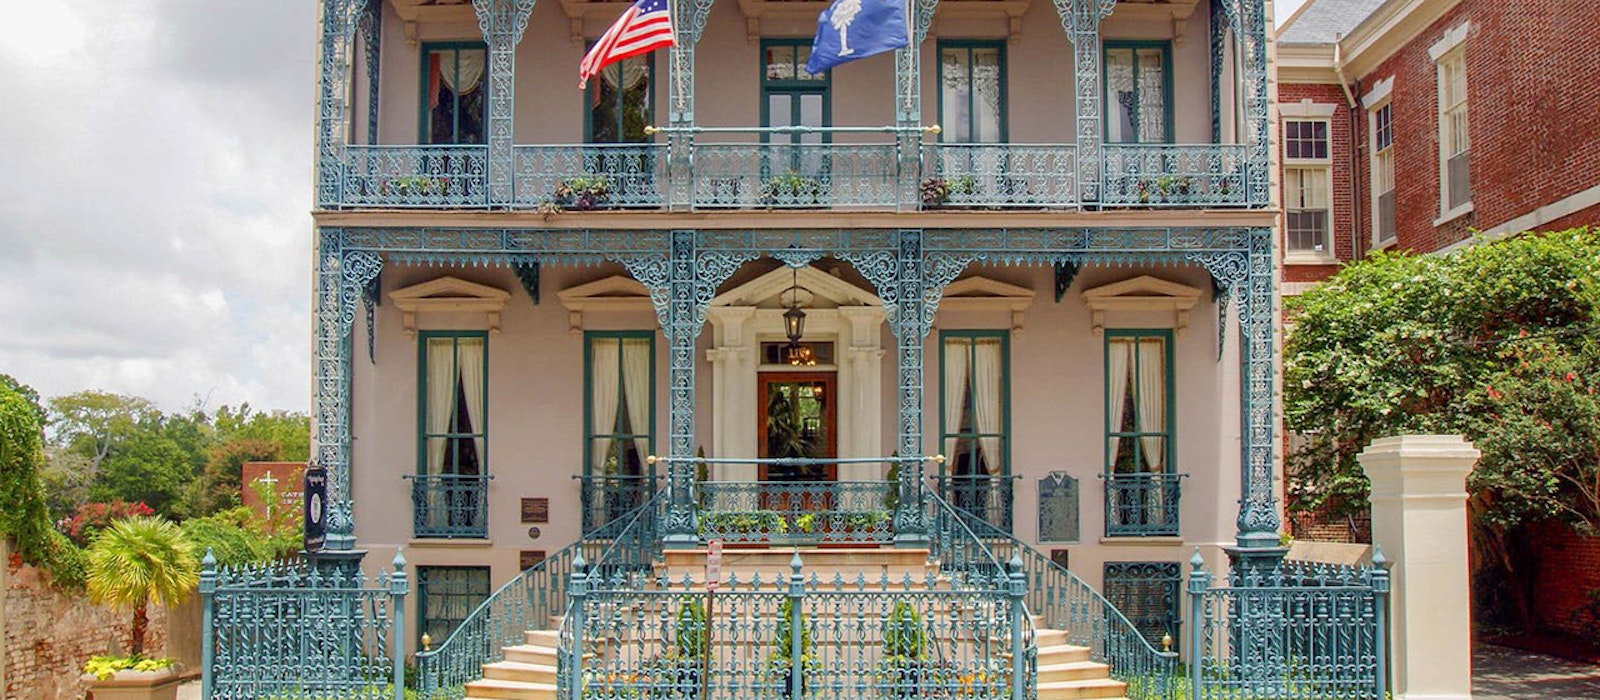 From a historic place to a beachside resort, Charleston has a hotel for every traveler.